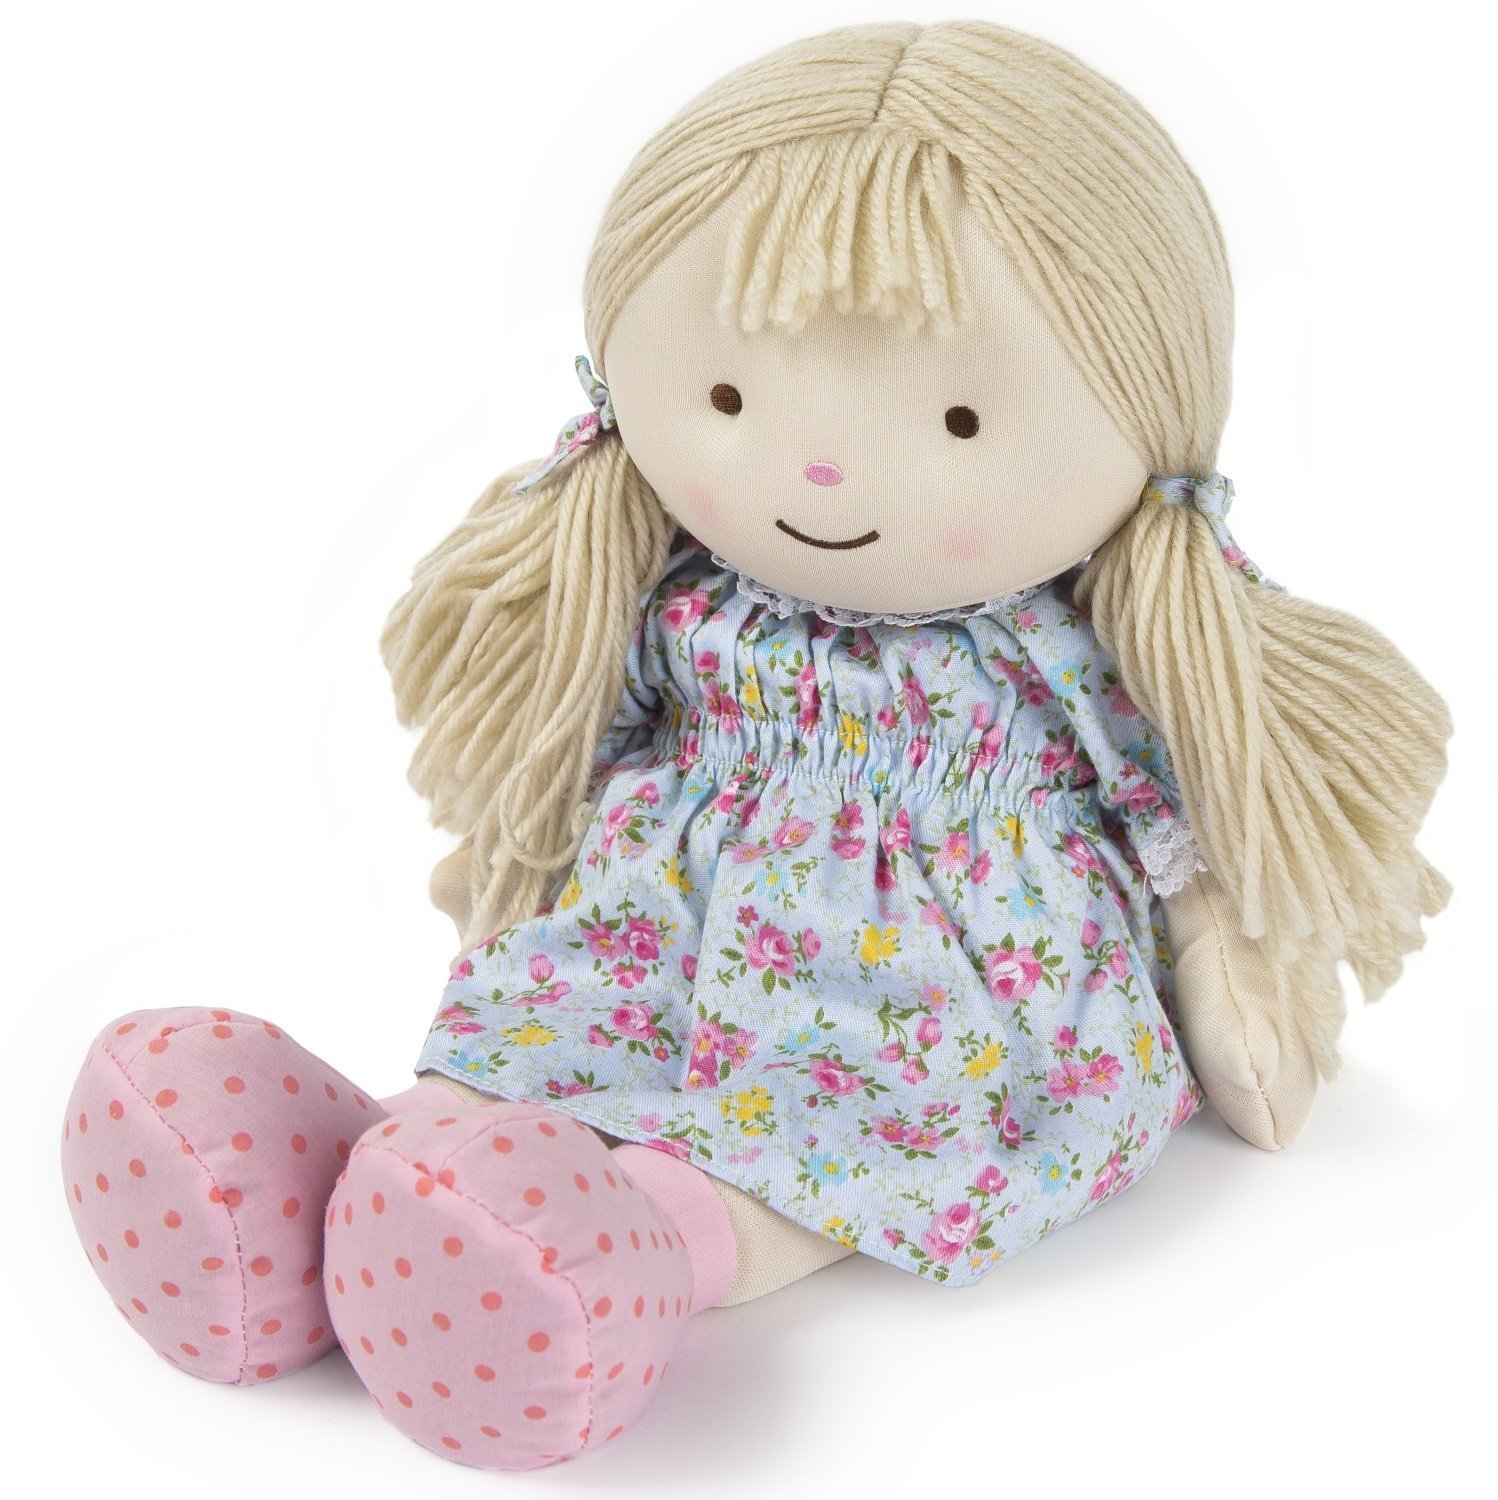 Amazon.com : Personalized Dibsies Butterfly Snuggle Doll ...